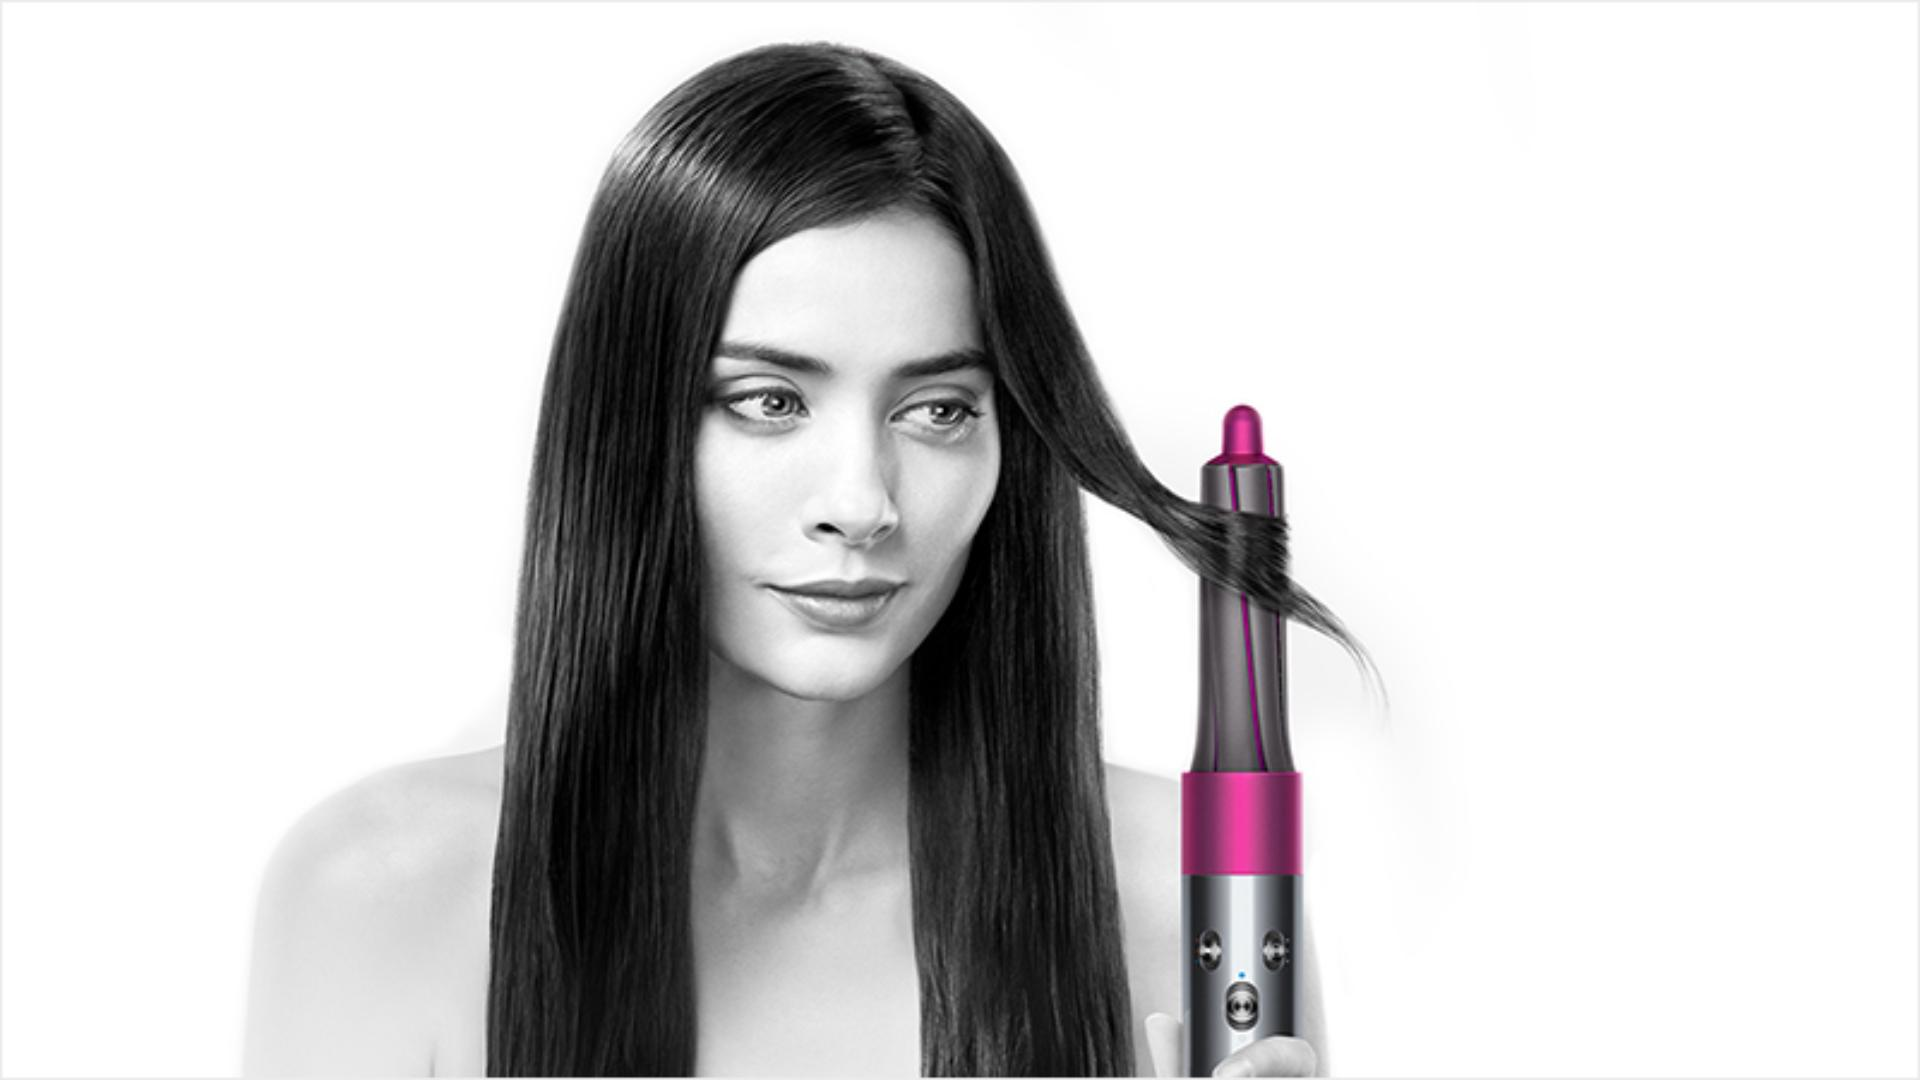 Model with straight hair using the Dyson Airwrap™ styler